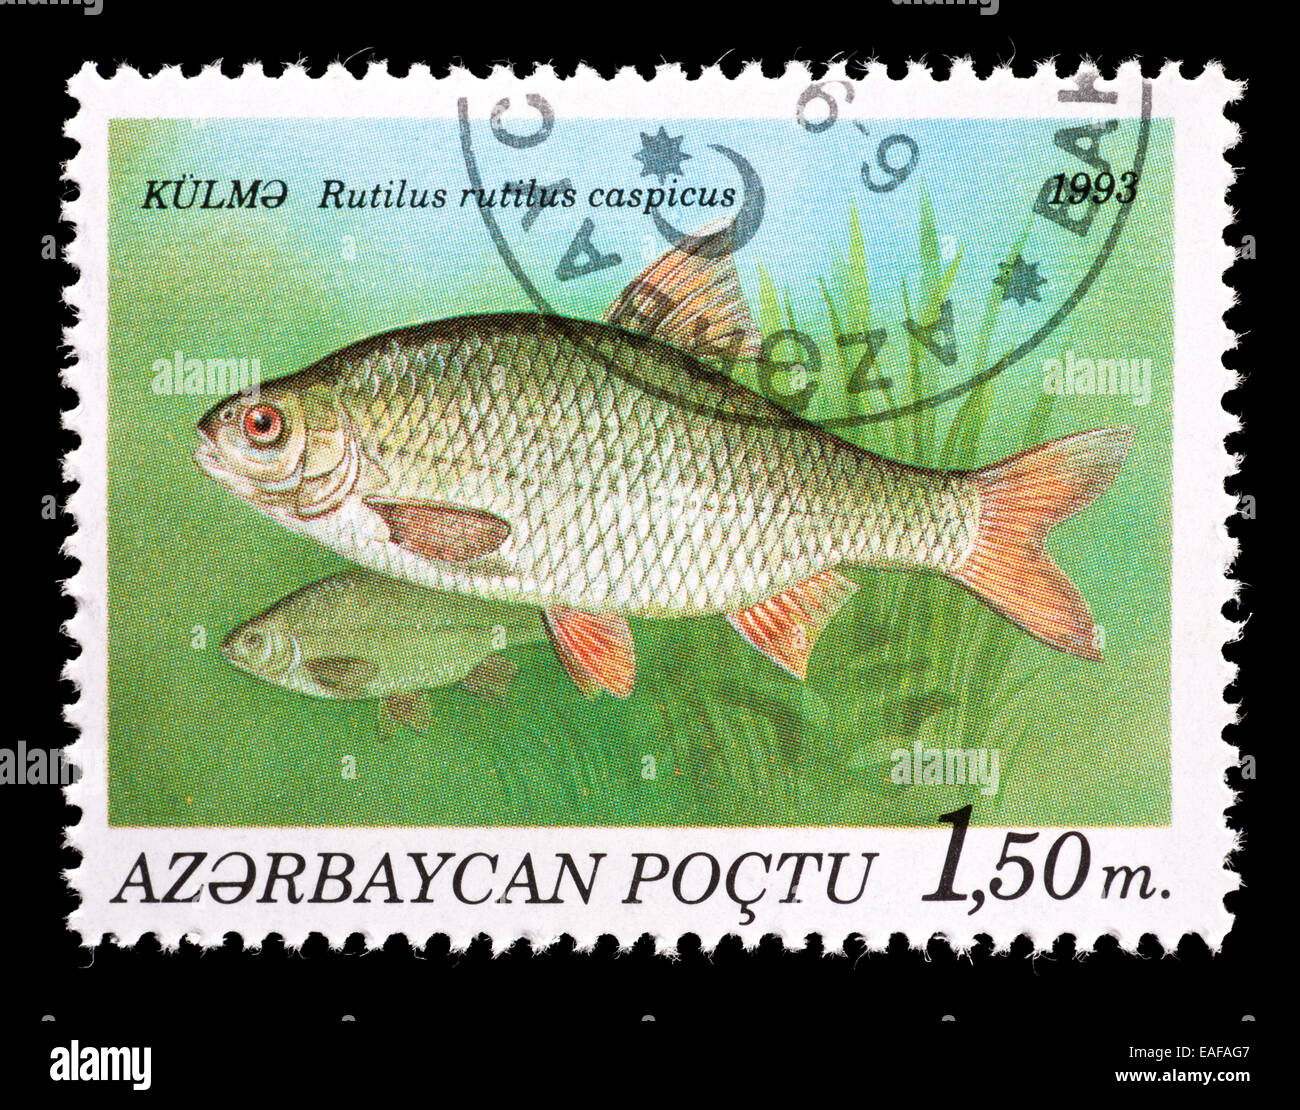 Postage stamp from Azerbaijan depicting common roach (Rutilus ruttilus) - Stock Image